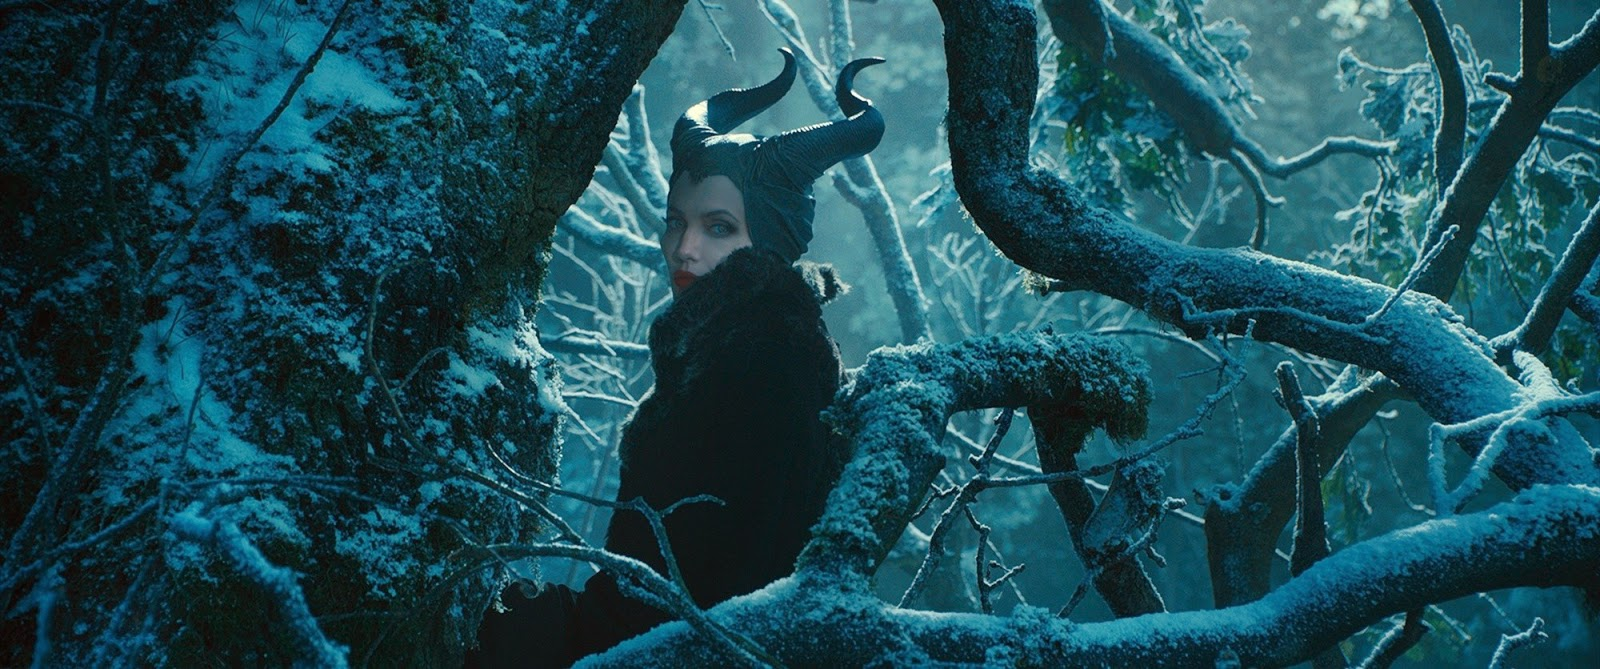 Warpaint And Unicorns The Re Imagining Of Maleficent